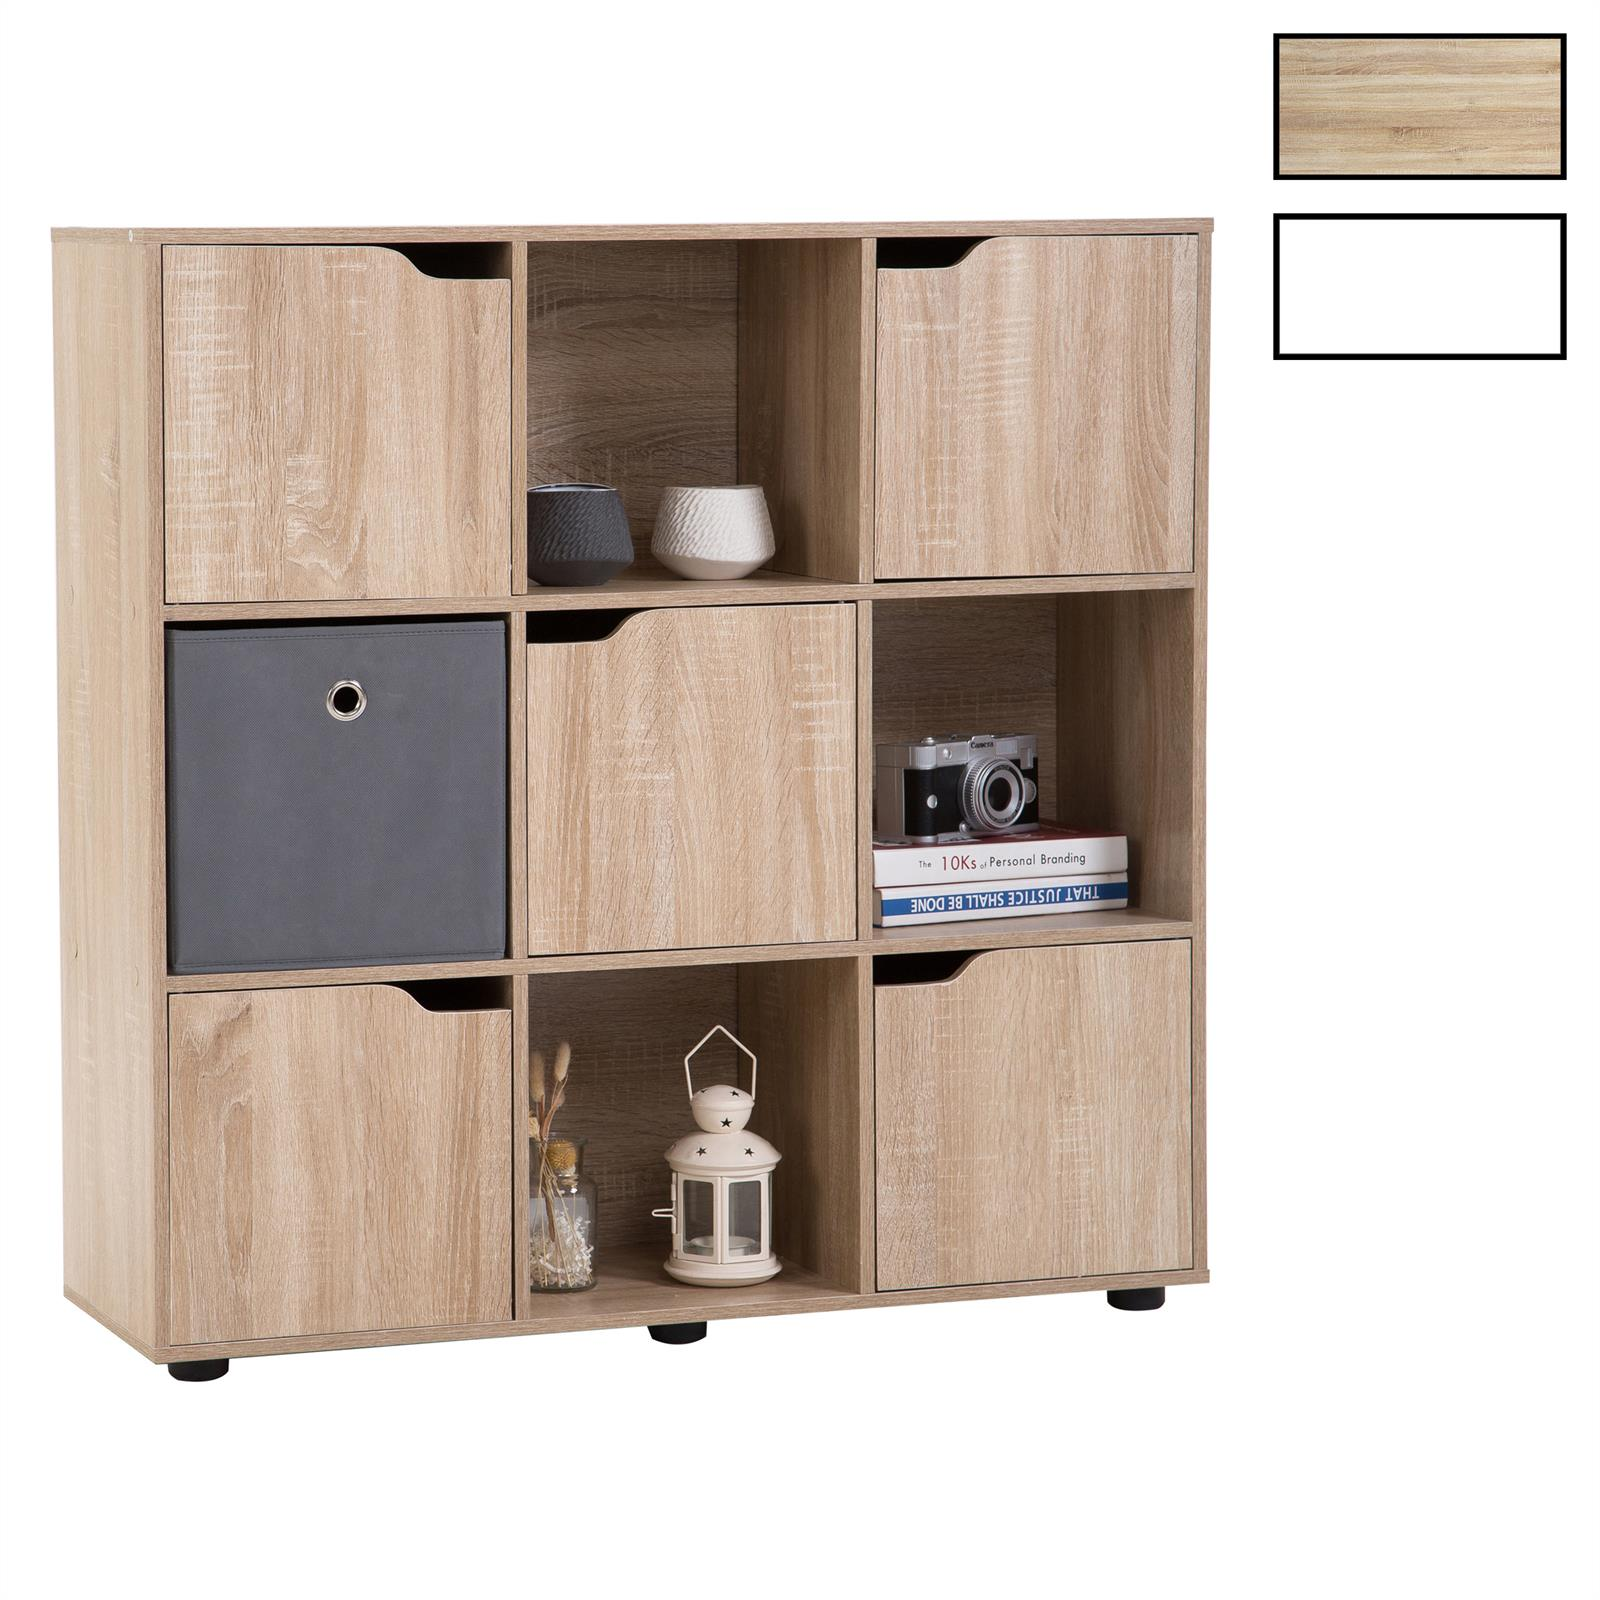 biblioth que vermont rangement 9 casiers mobil meubles. Black Bedroom Furniture Sets. Home Design Ideas